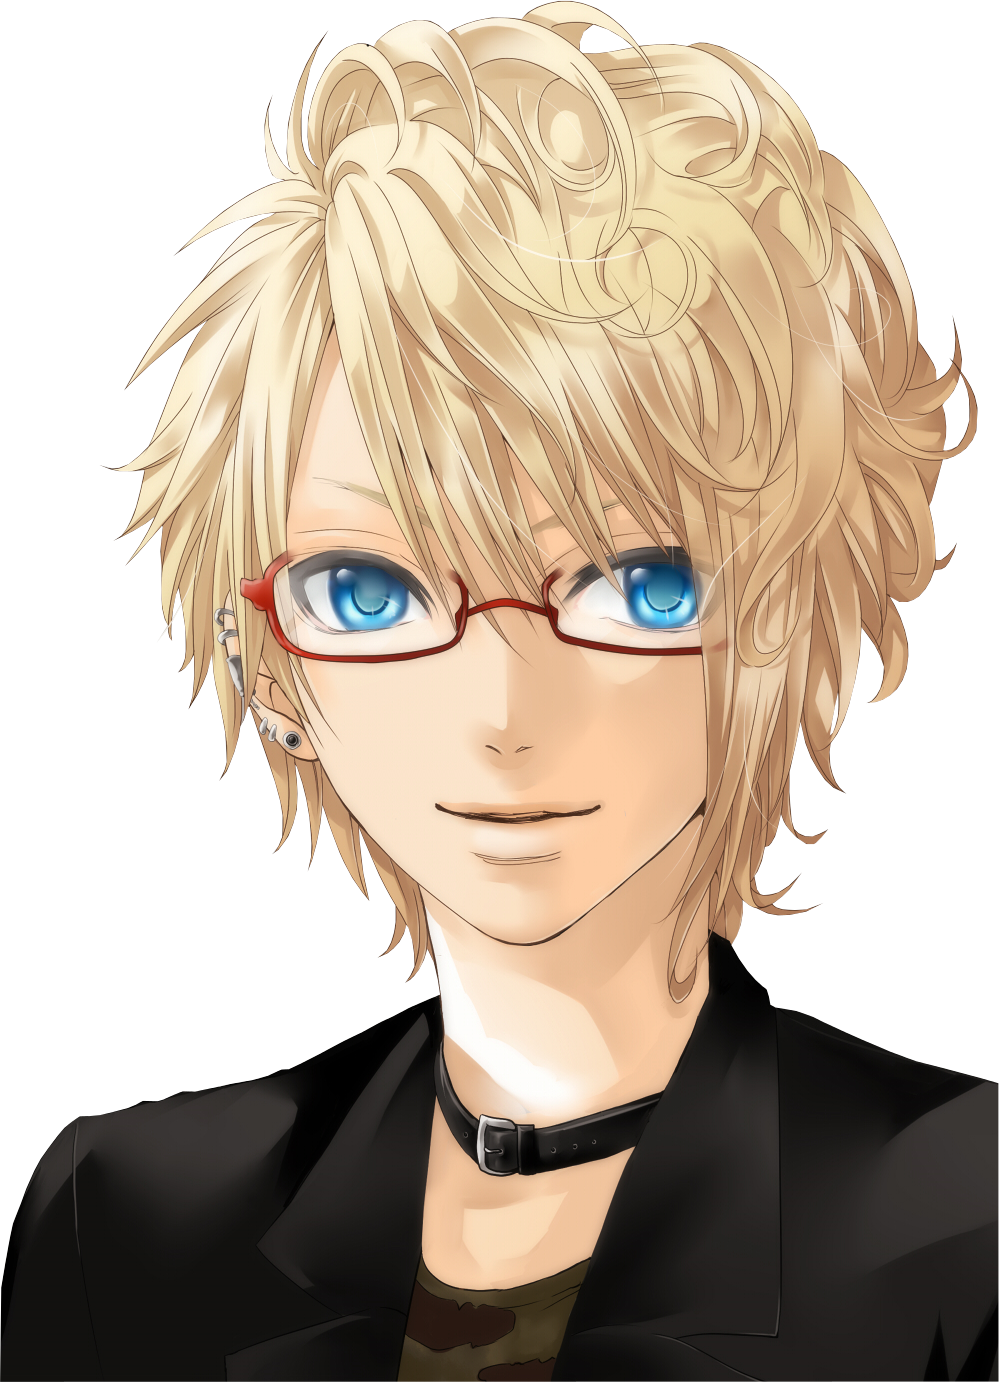 Aiden Walkinson Anime Guys With Glasses Anime Guys Shirtless Curly Hair Styles